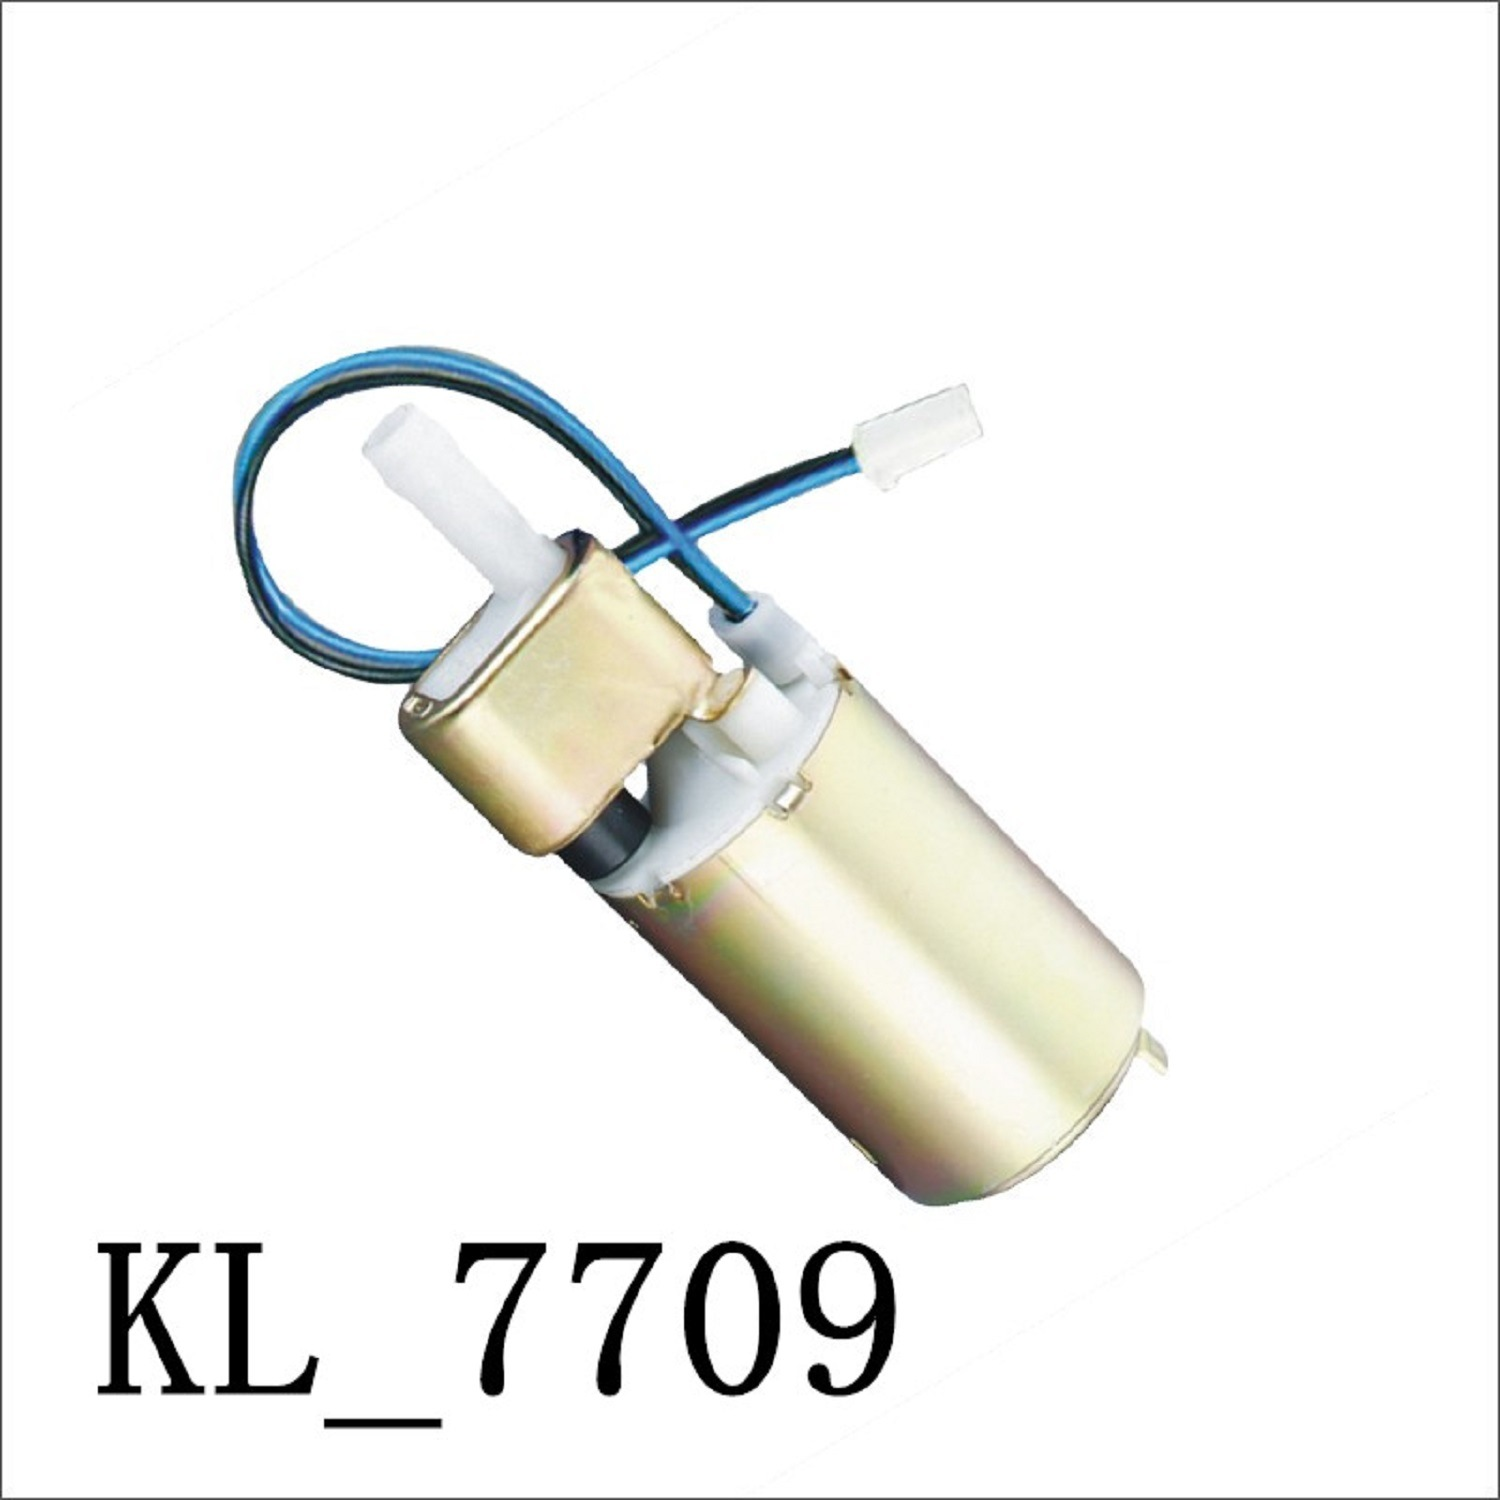 Electric Fuel Pump for Suzuki (15110-63B01, 15100-63B00) with Kl-7709